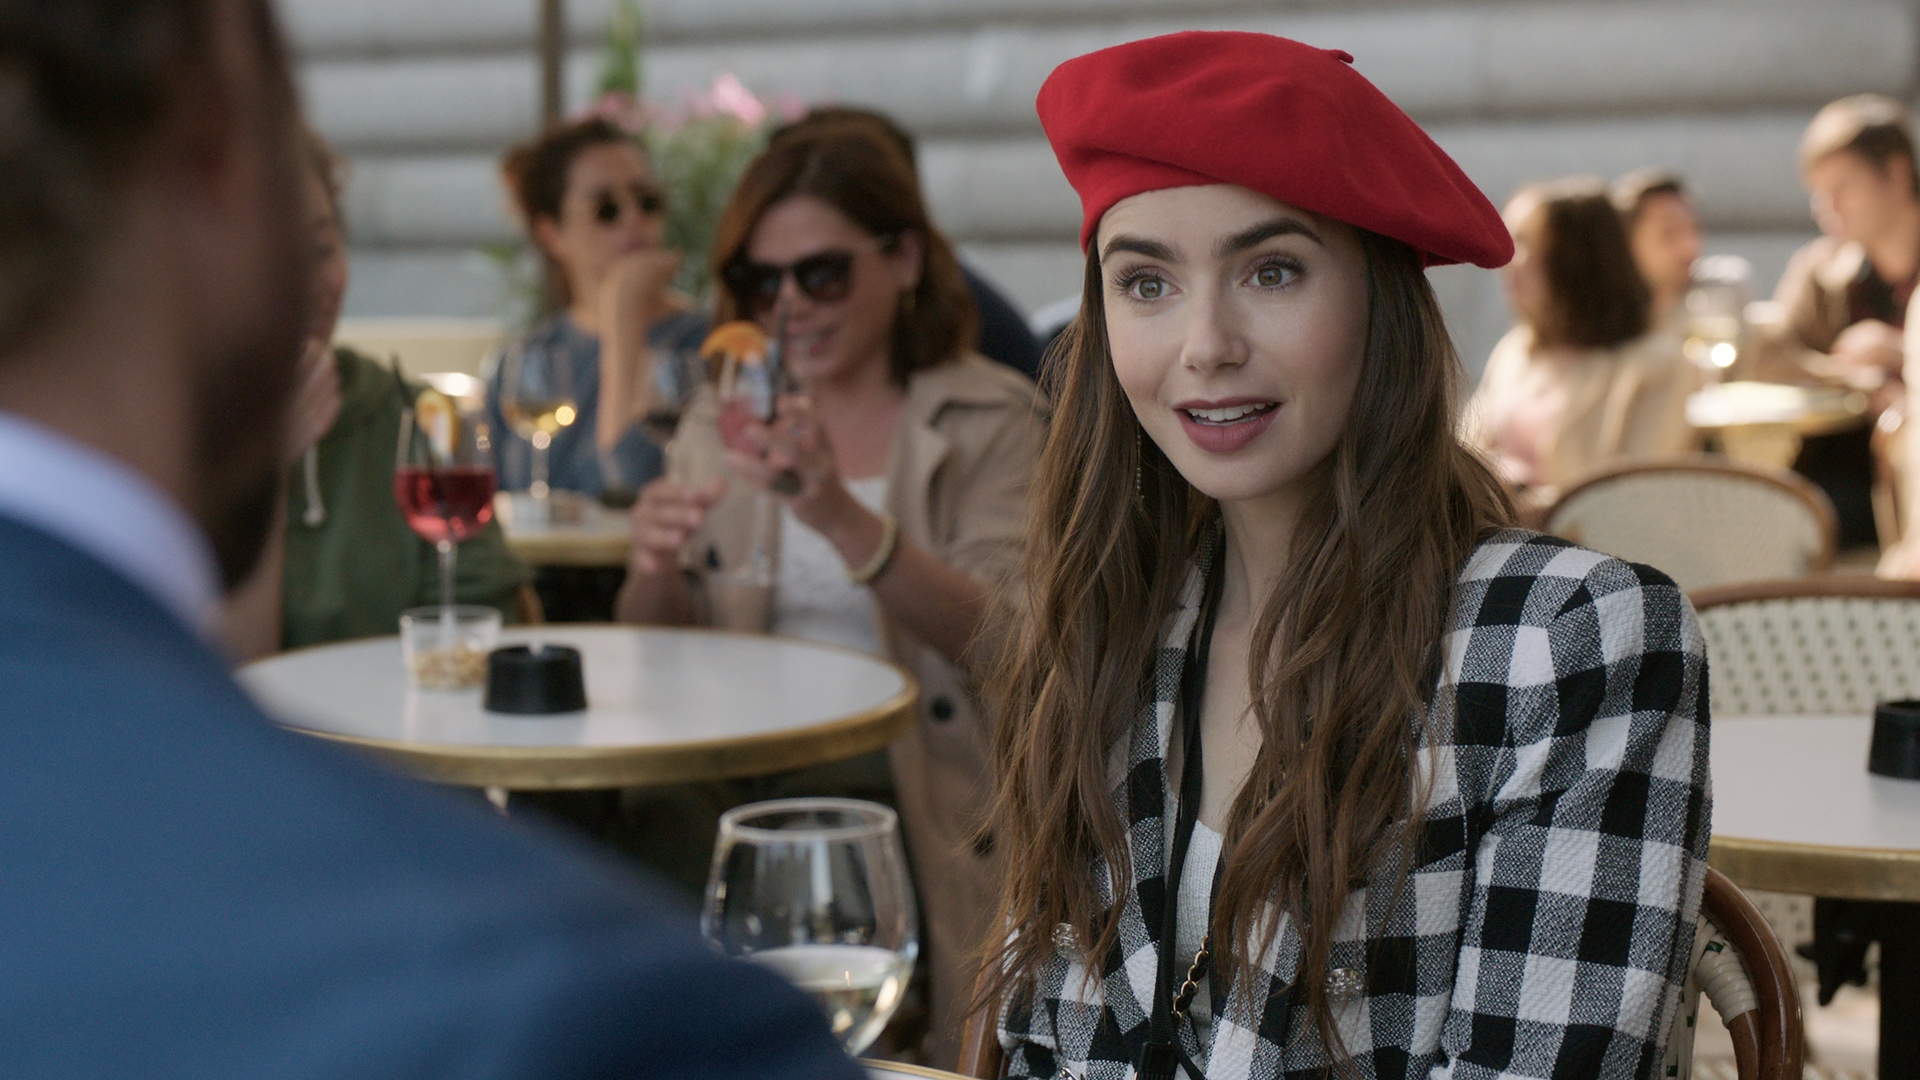 6 Things You Should Know About 'Emily in Paris', Netflix's Newest Rom-Com Series